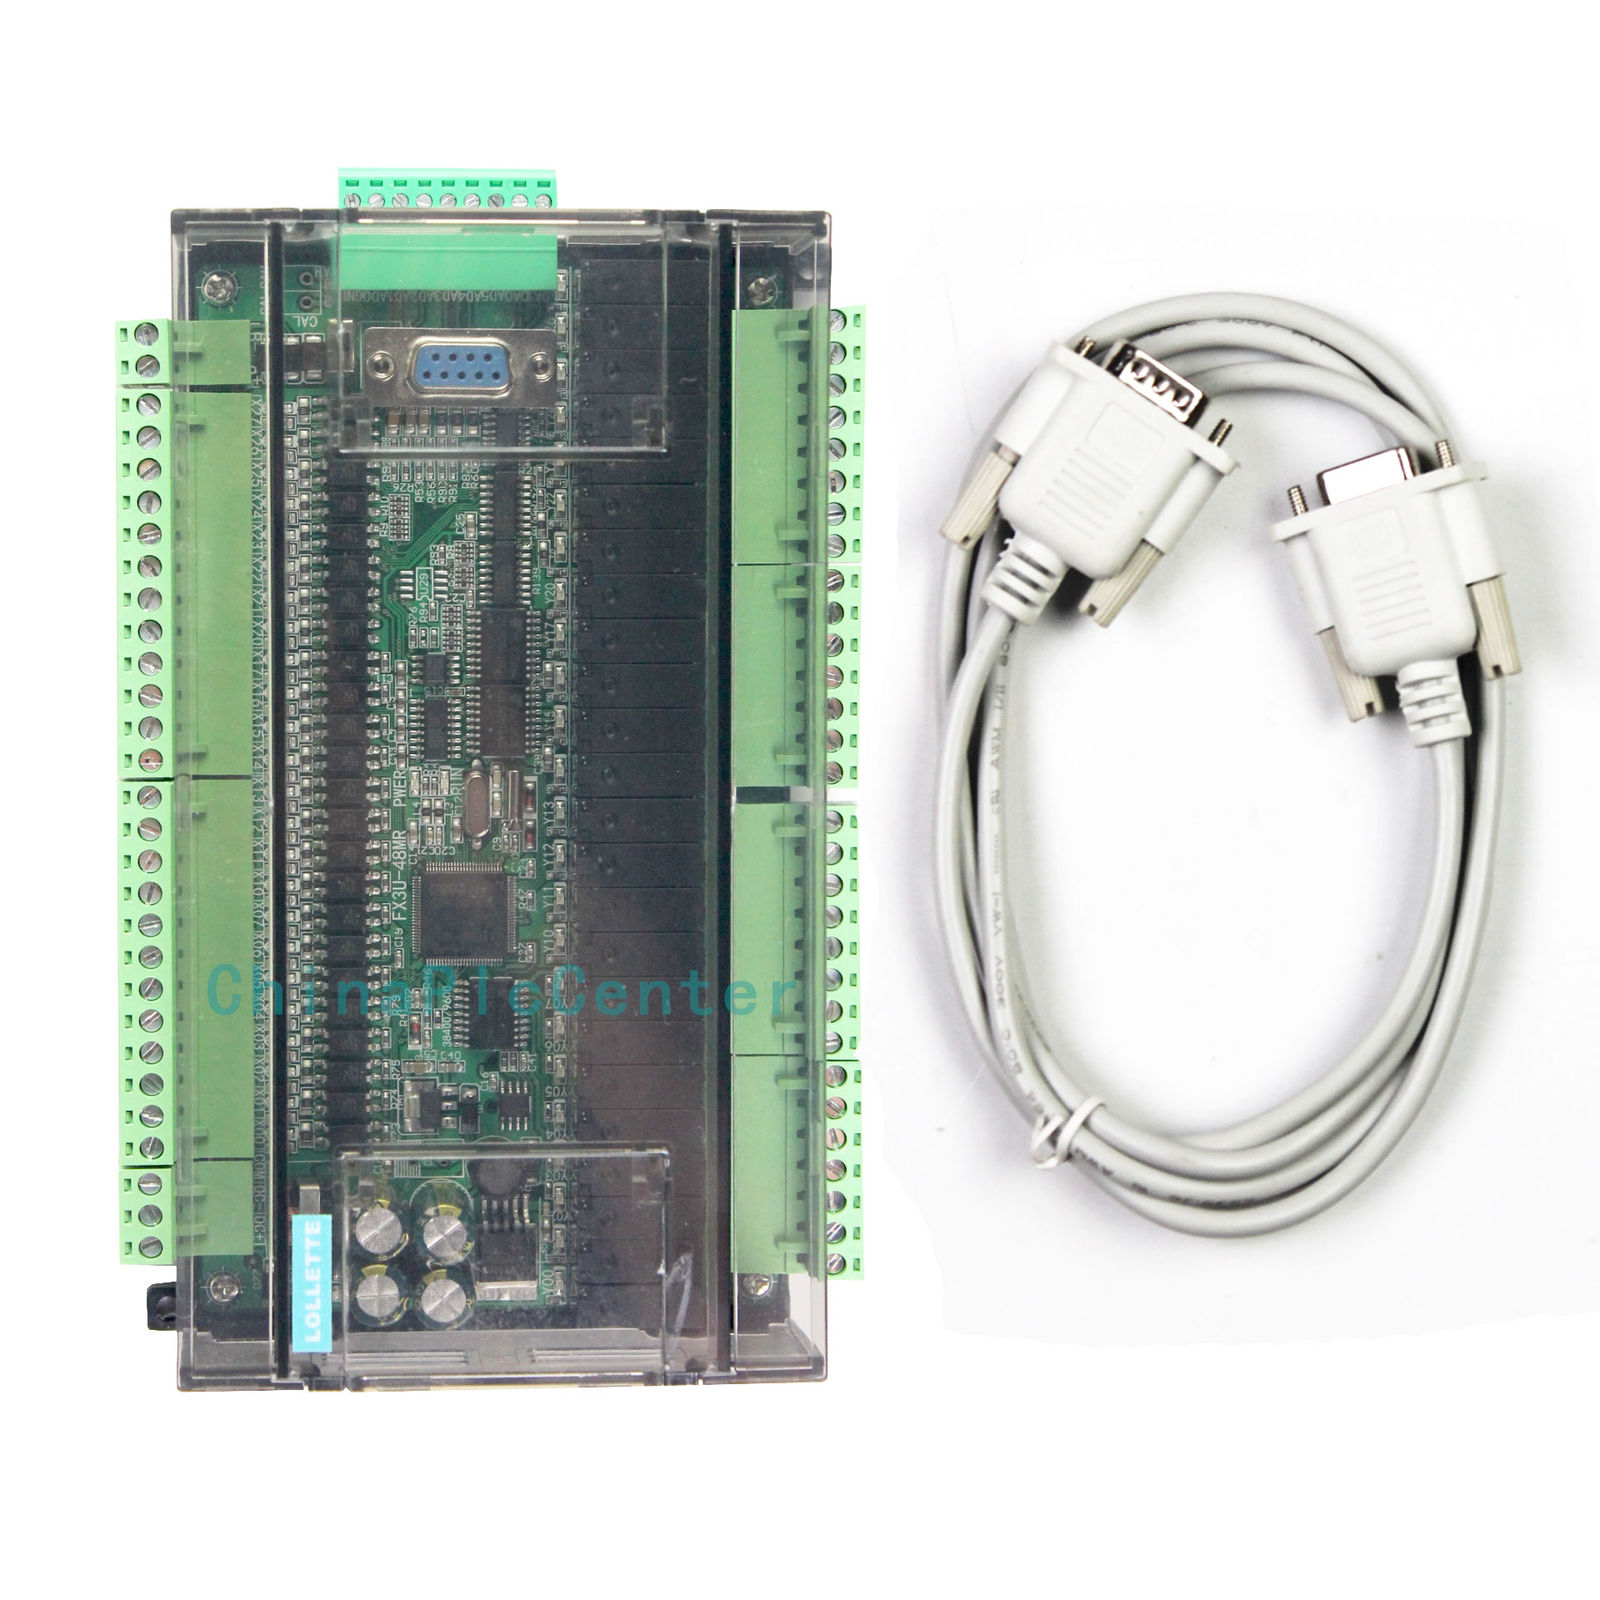 FX3U-24MR High-speed Programmable Control Board + Cable for Mitsubishi PLC